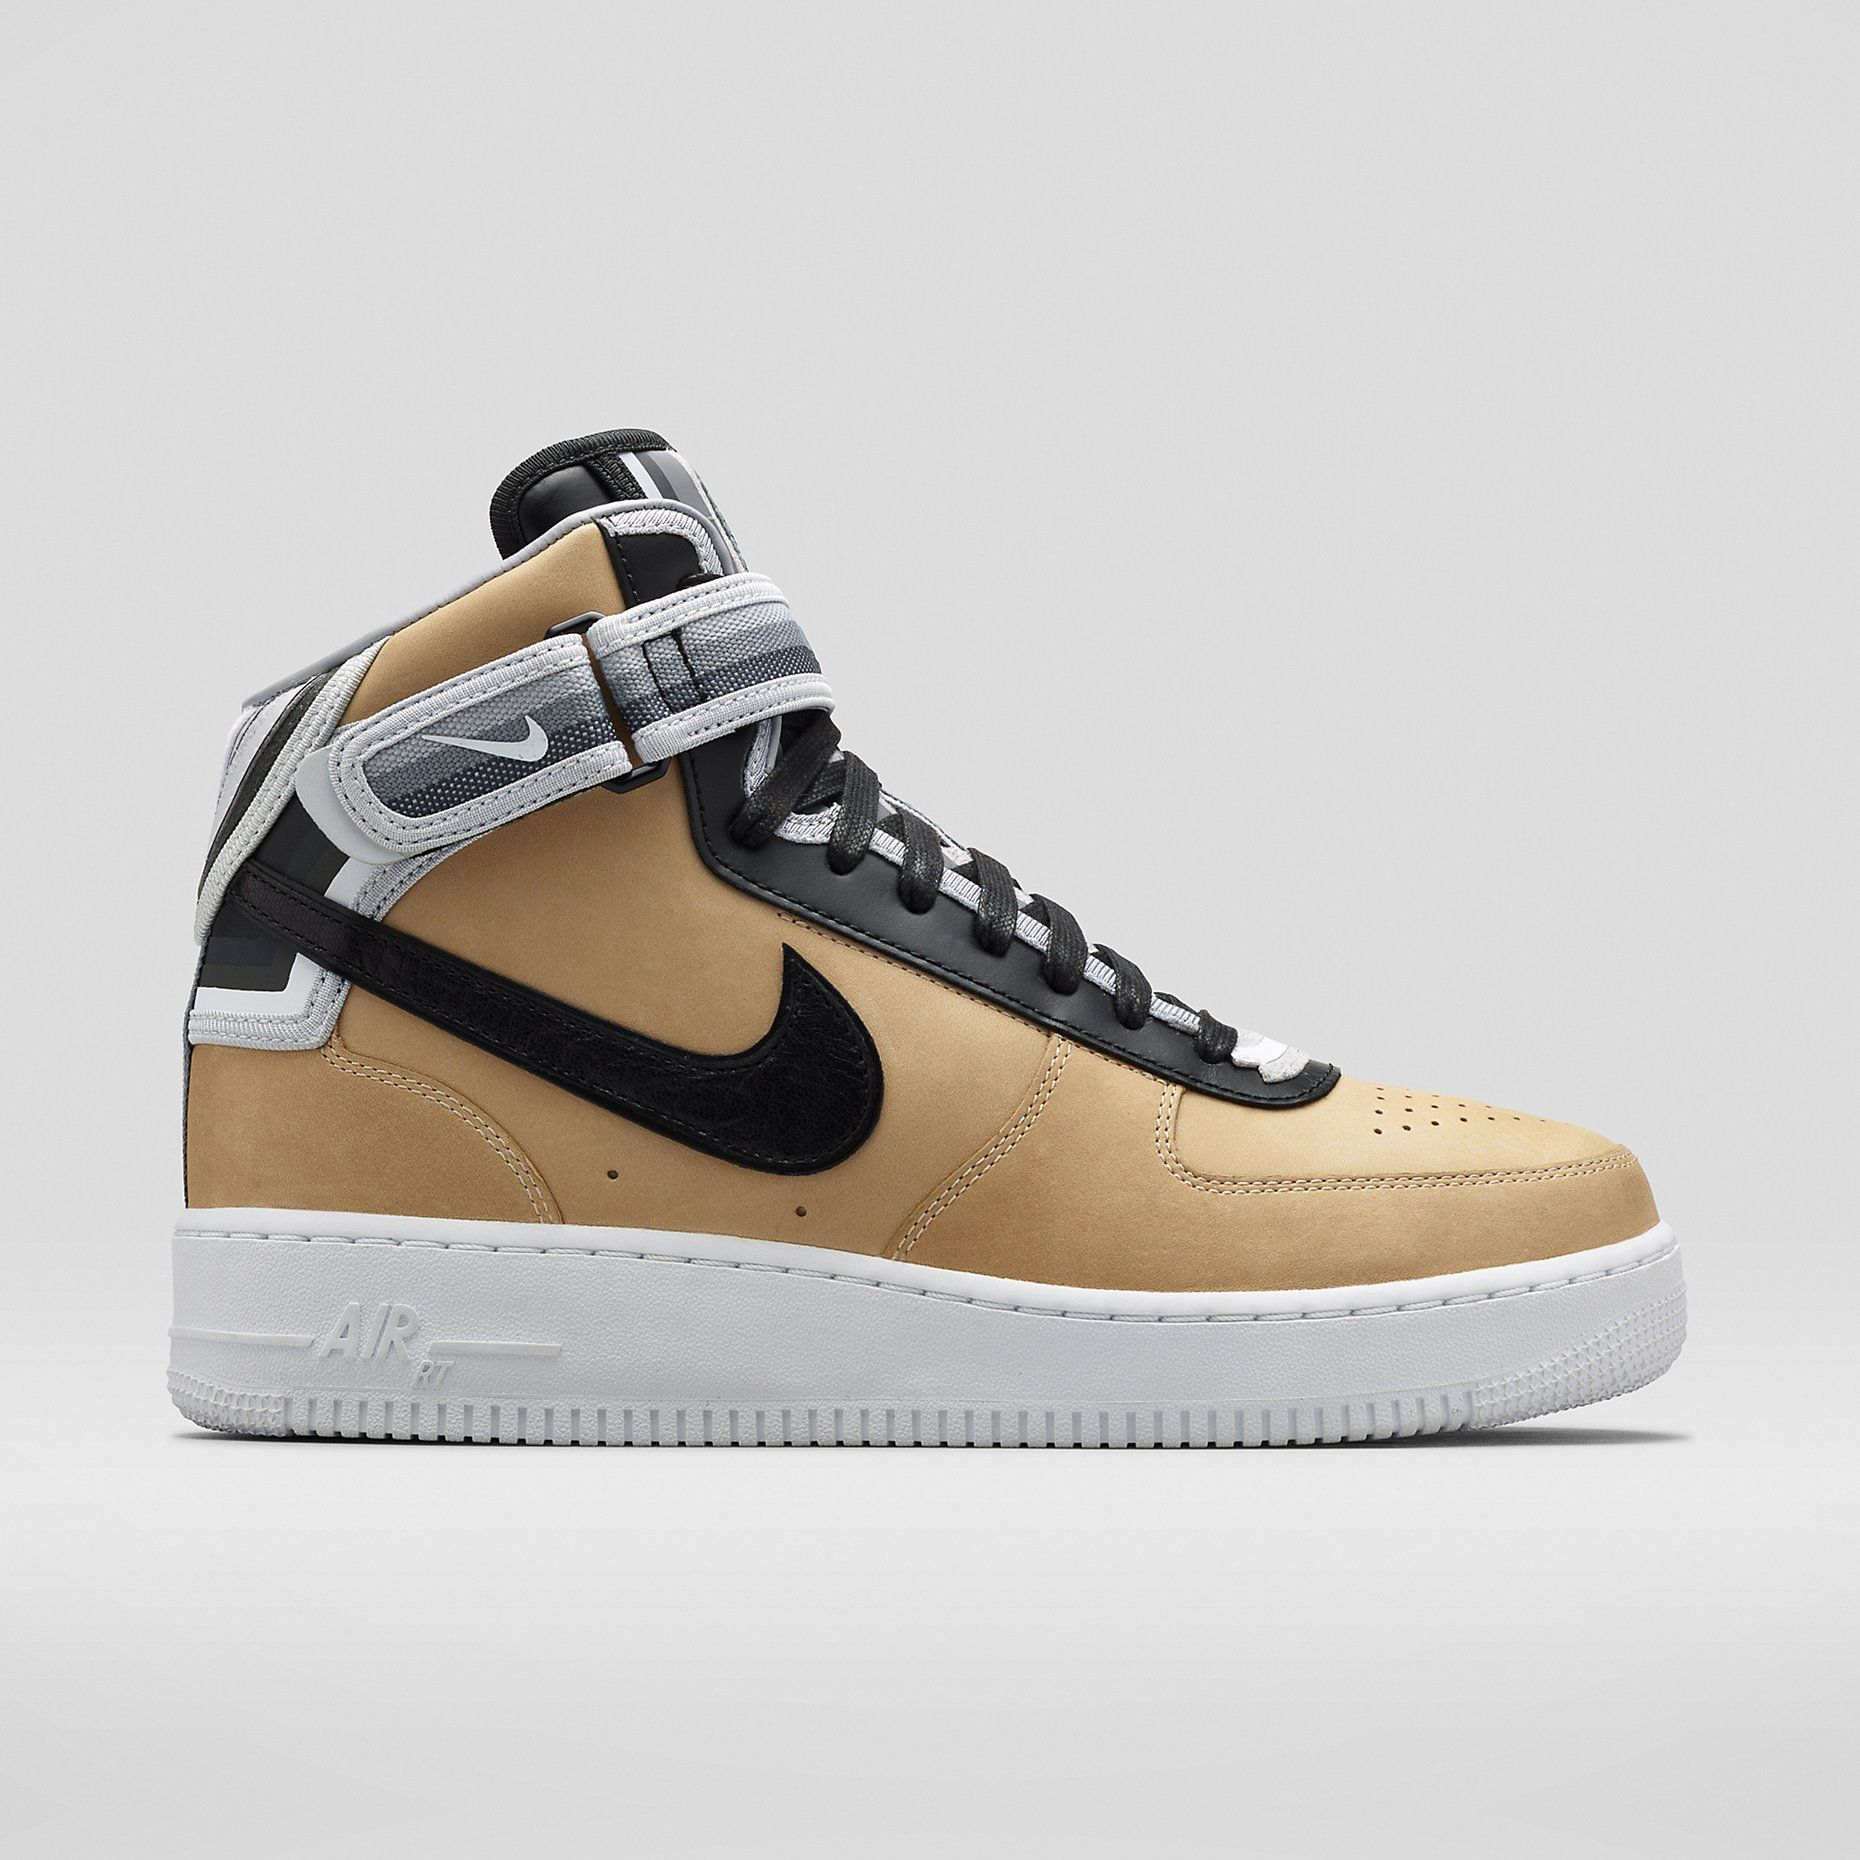 taille 40 f3bab edbf9 Nike Air Force 1 Mid (Tisci) – Chaussure pour Homme. Nike ...